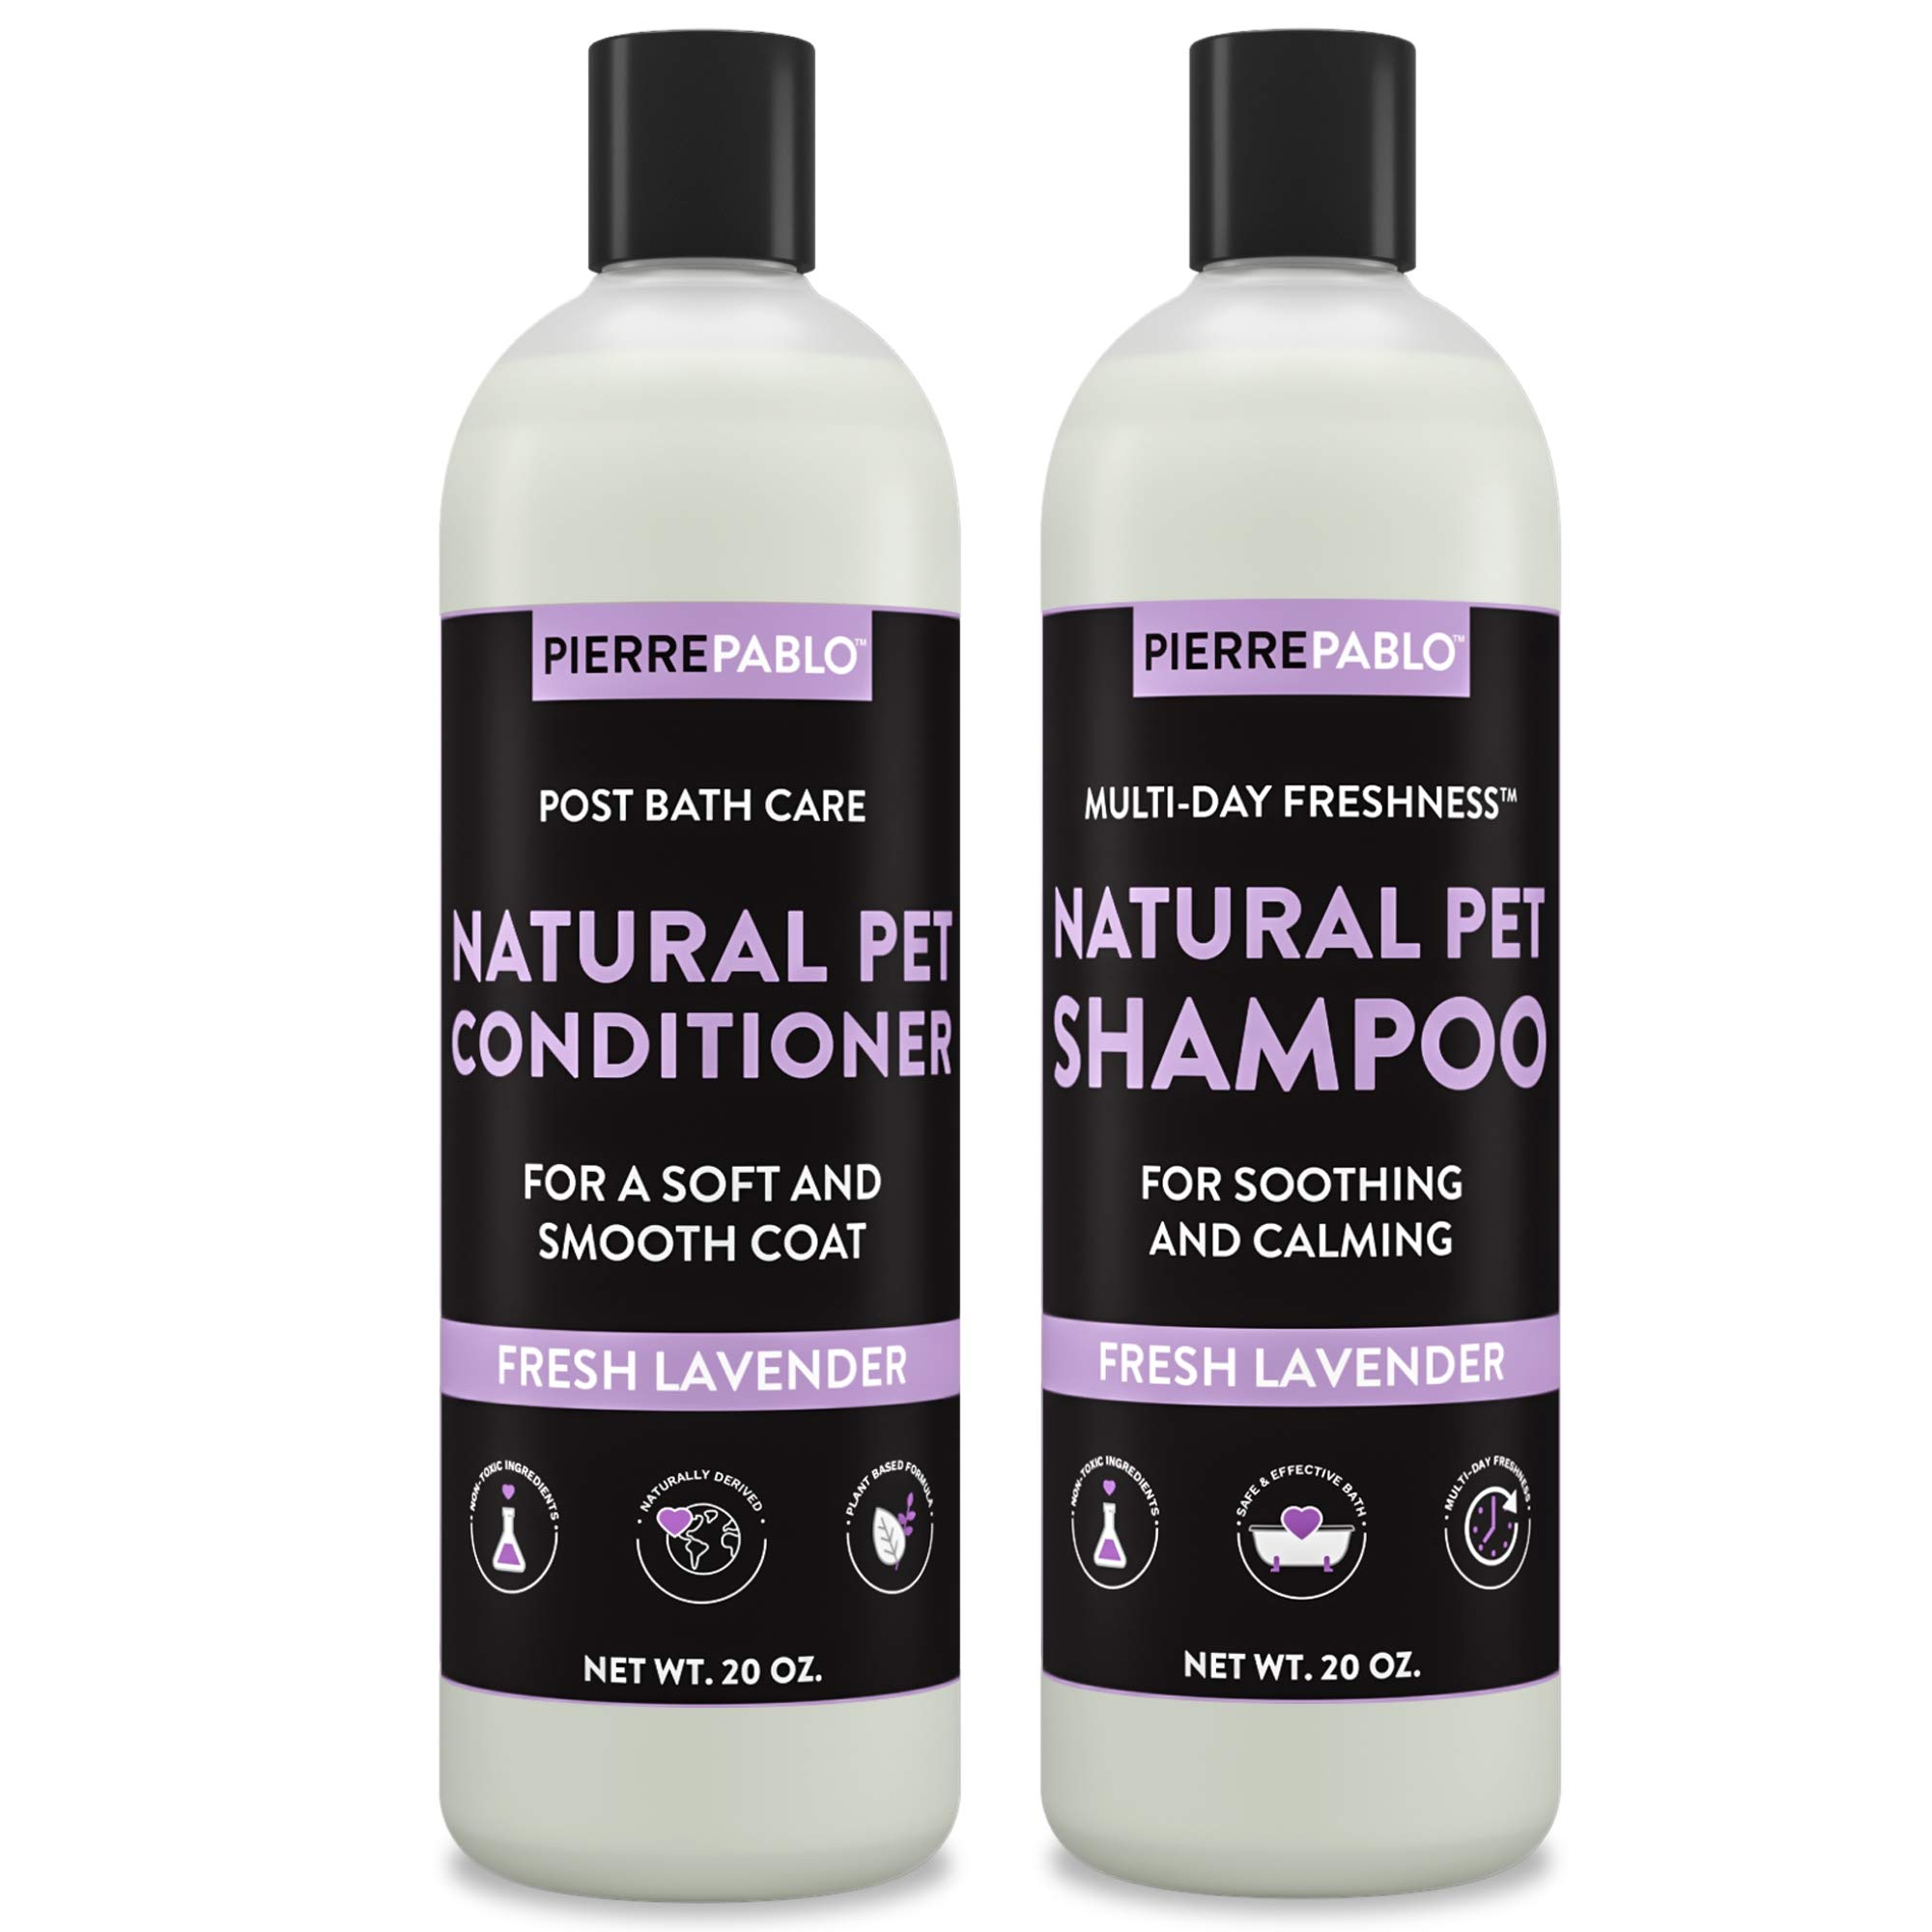 PierrePablo Dog Shampoo and Conditioner Dual Combination Set, Multi-Day Freshness, Lavender Scent, 24 ounces each